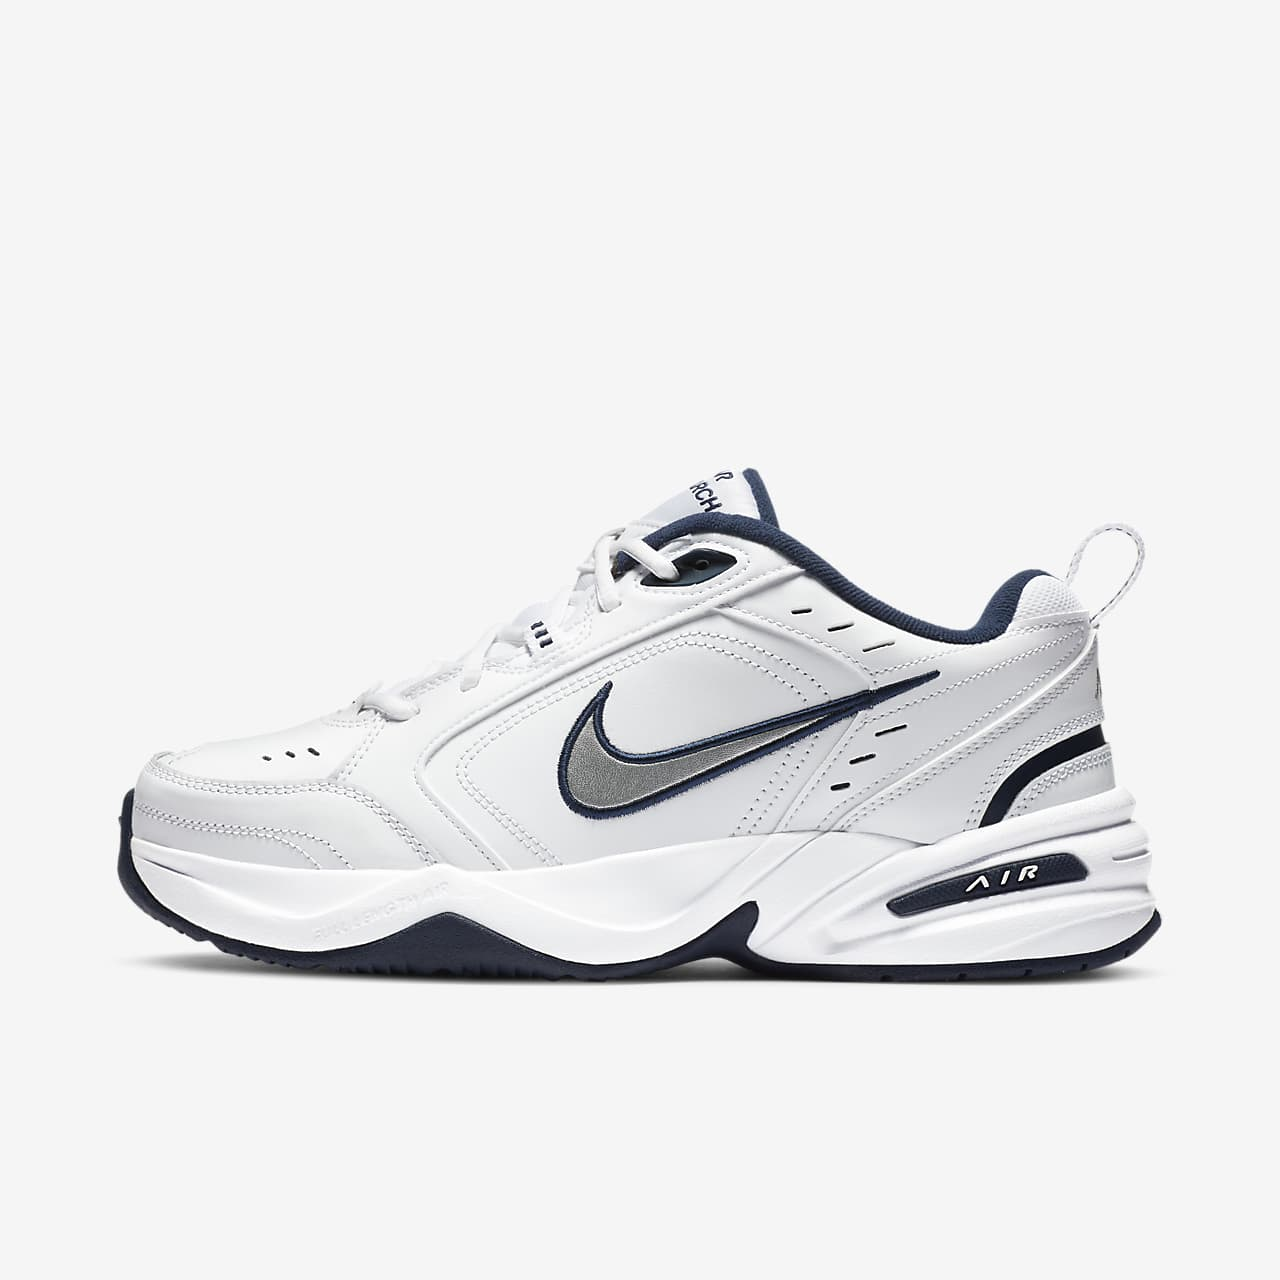 ... Träningssko Nike Air Monarch IV Unisex